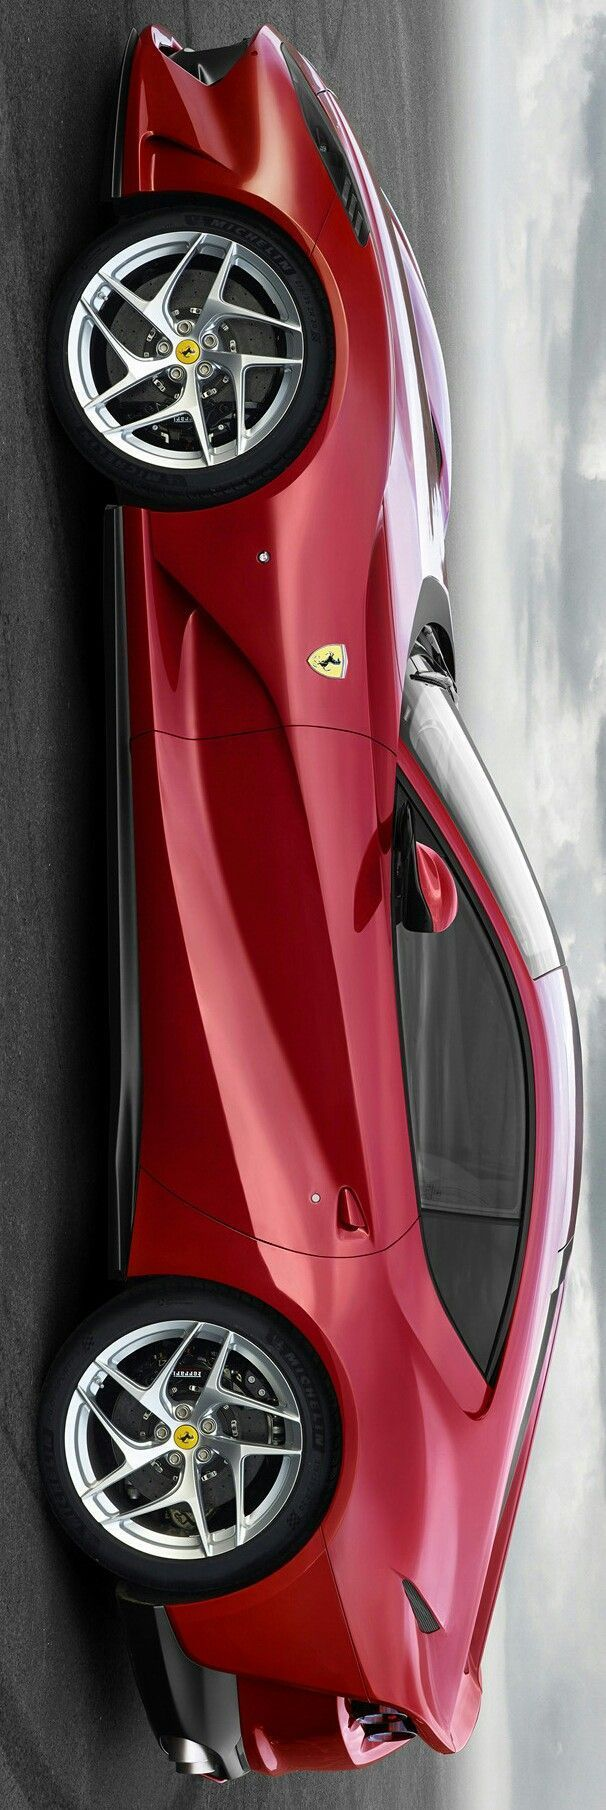 Awesome Ferrari 2017: Awesome Ferrari 2017 -  2017 Ferrari 812 Superfast by Levon...  Fast cars Check ... Check more at http://24cars.top/2017/ferrari-2017-awesome-ferrari-2017-2017-ferrari-812-superfast-by-levon-fast-cars-check/